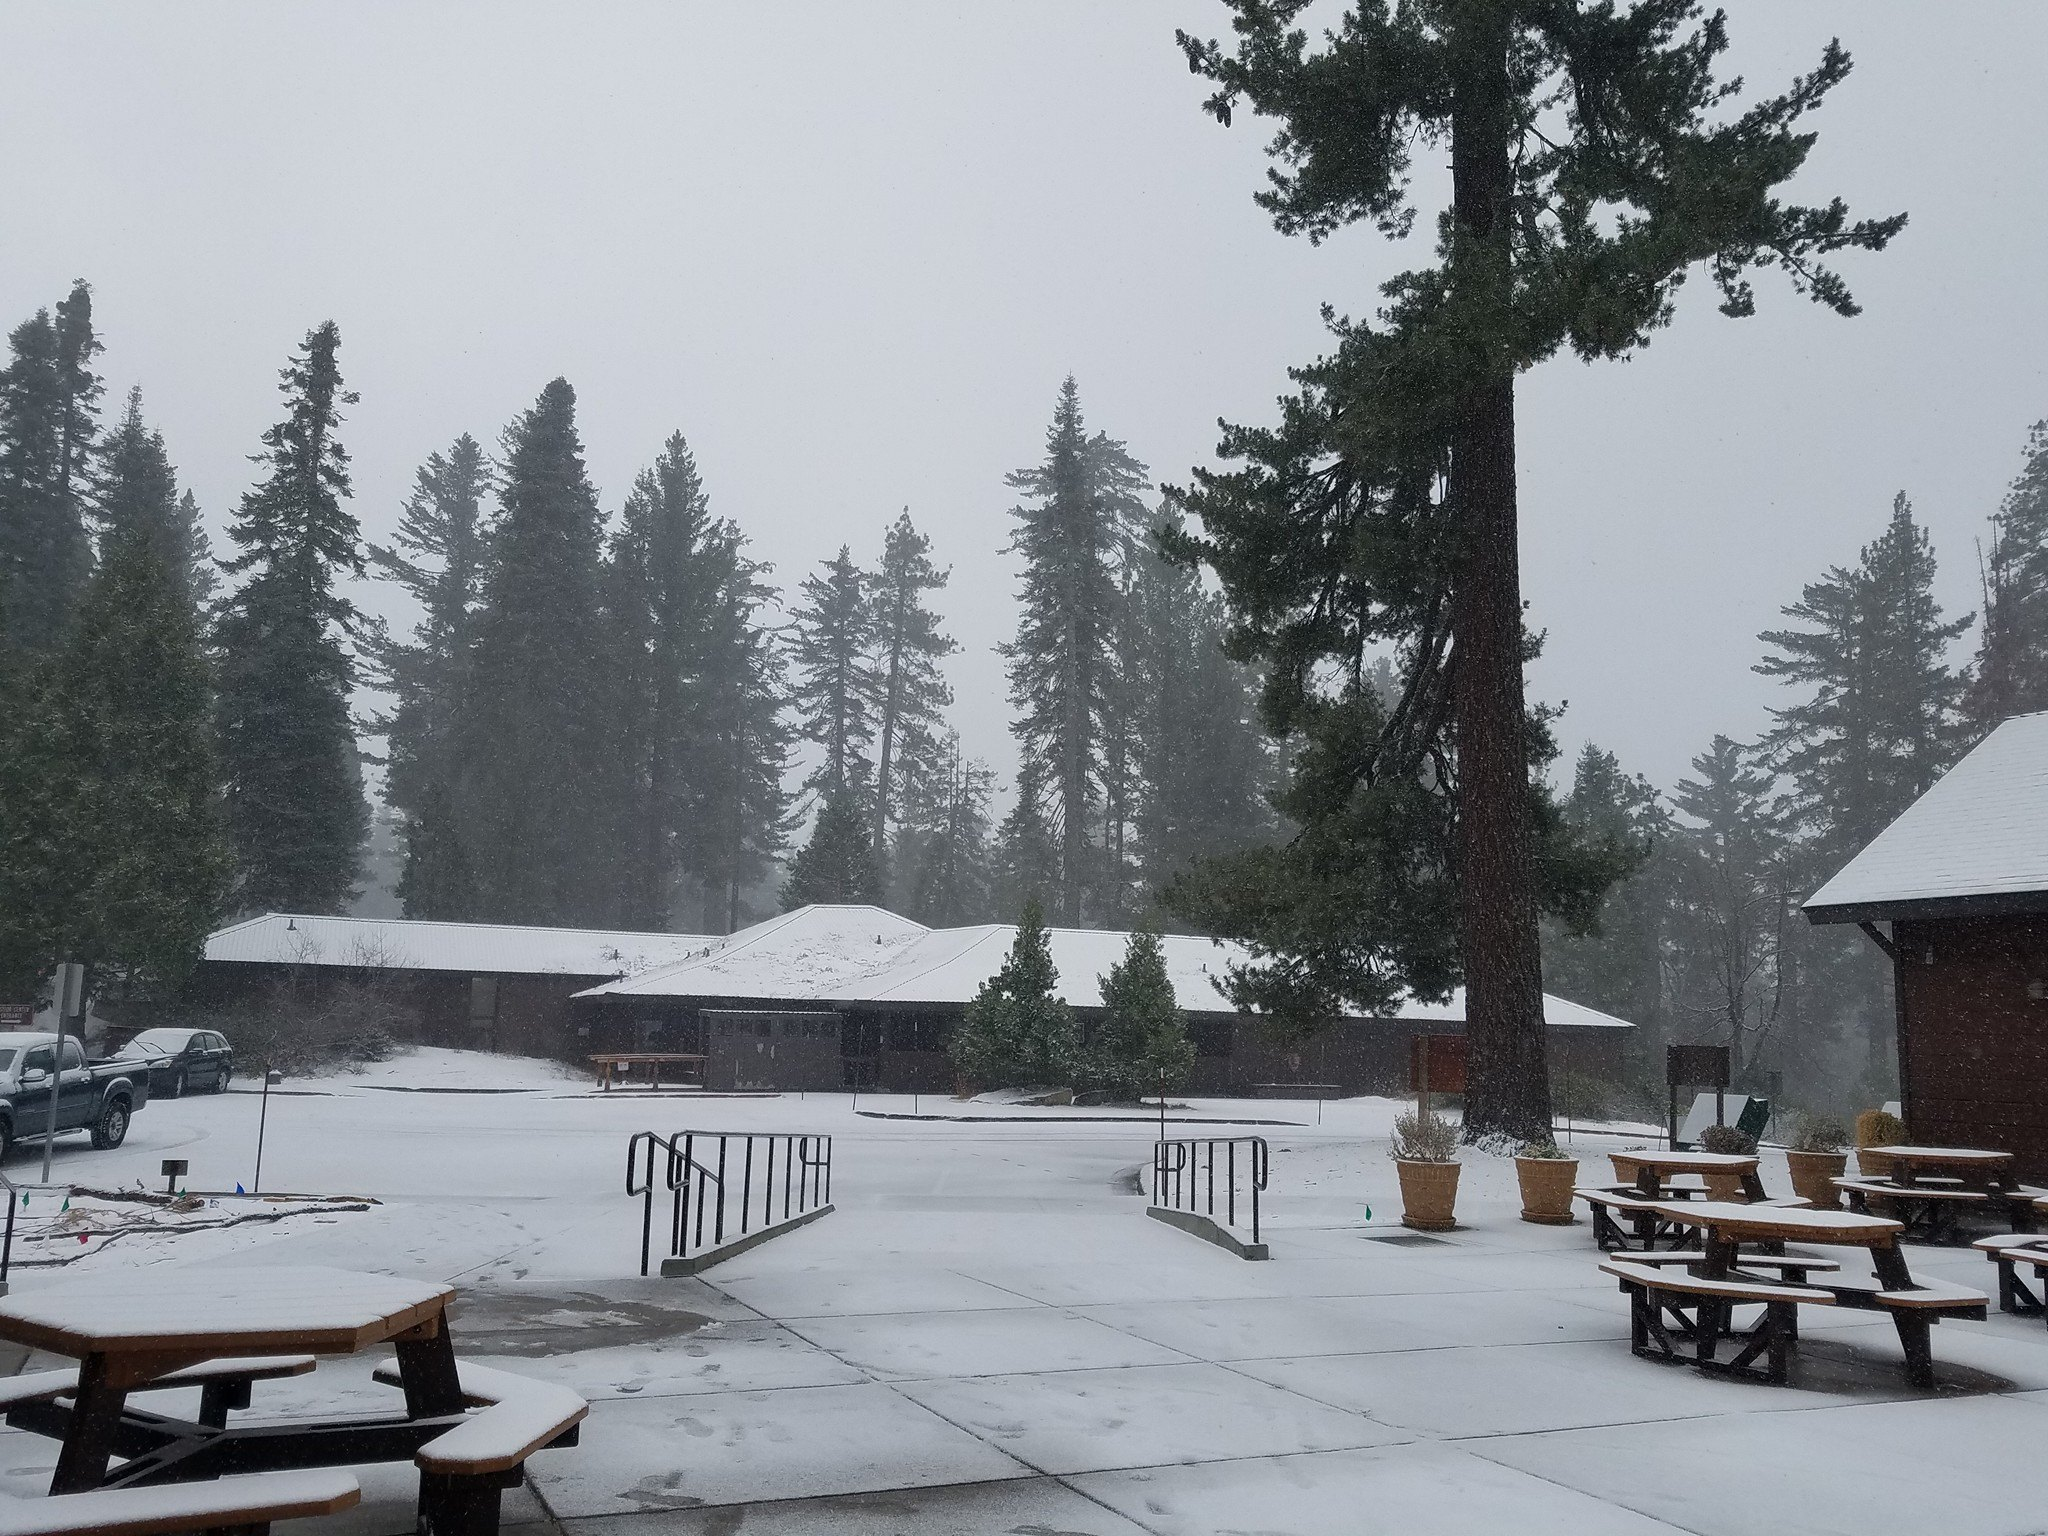 Winter Weather hits the Central Valley and mountains